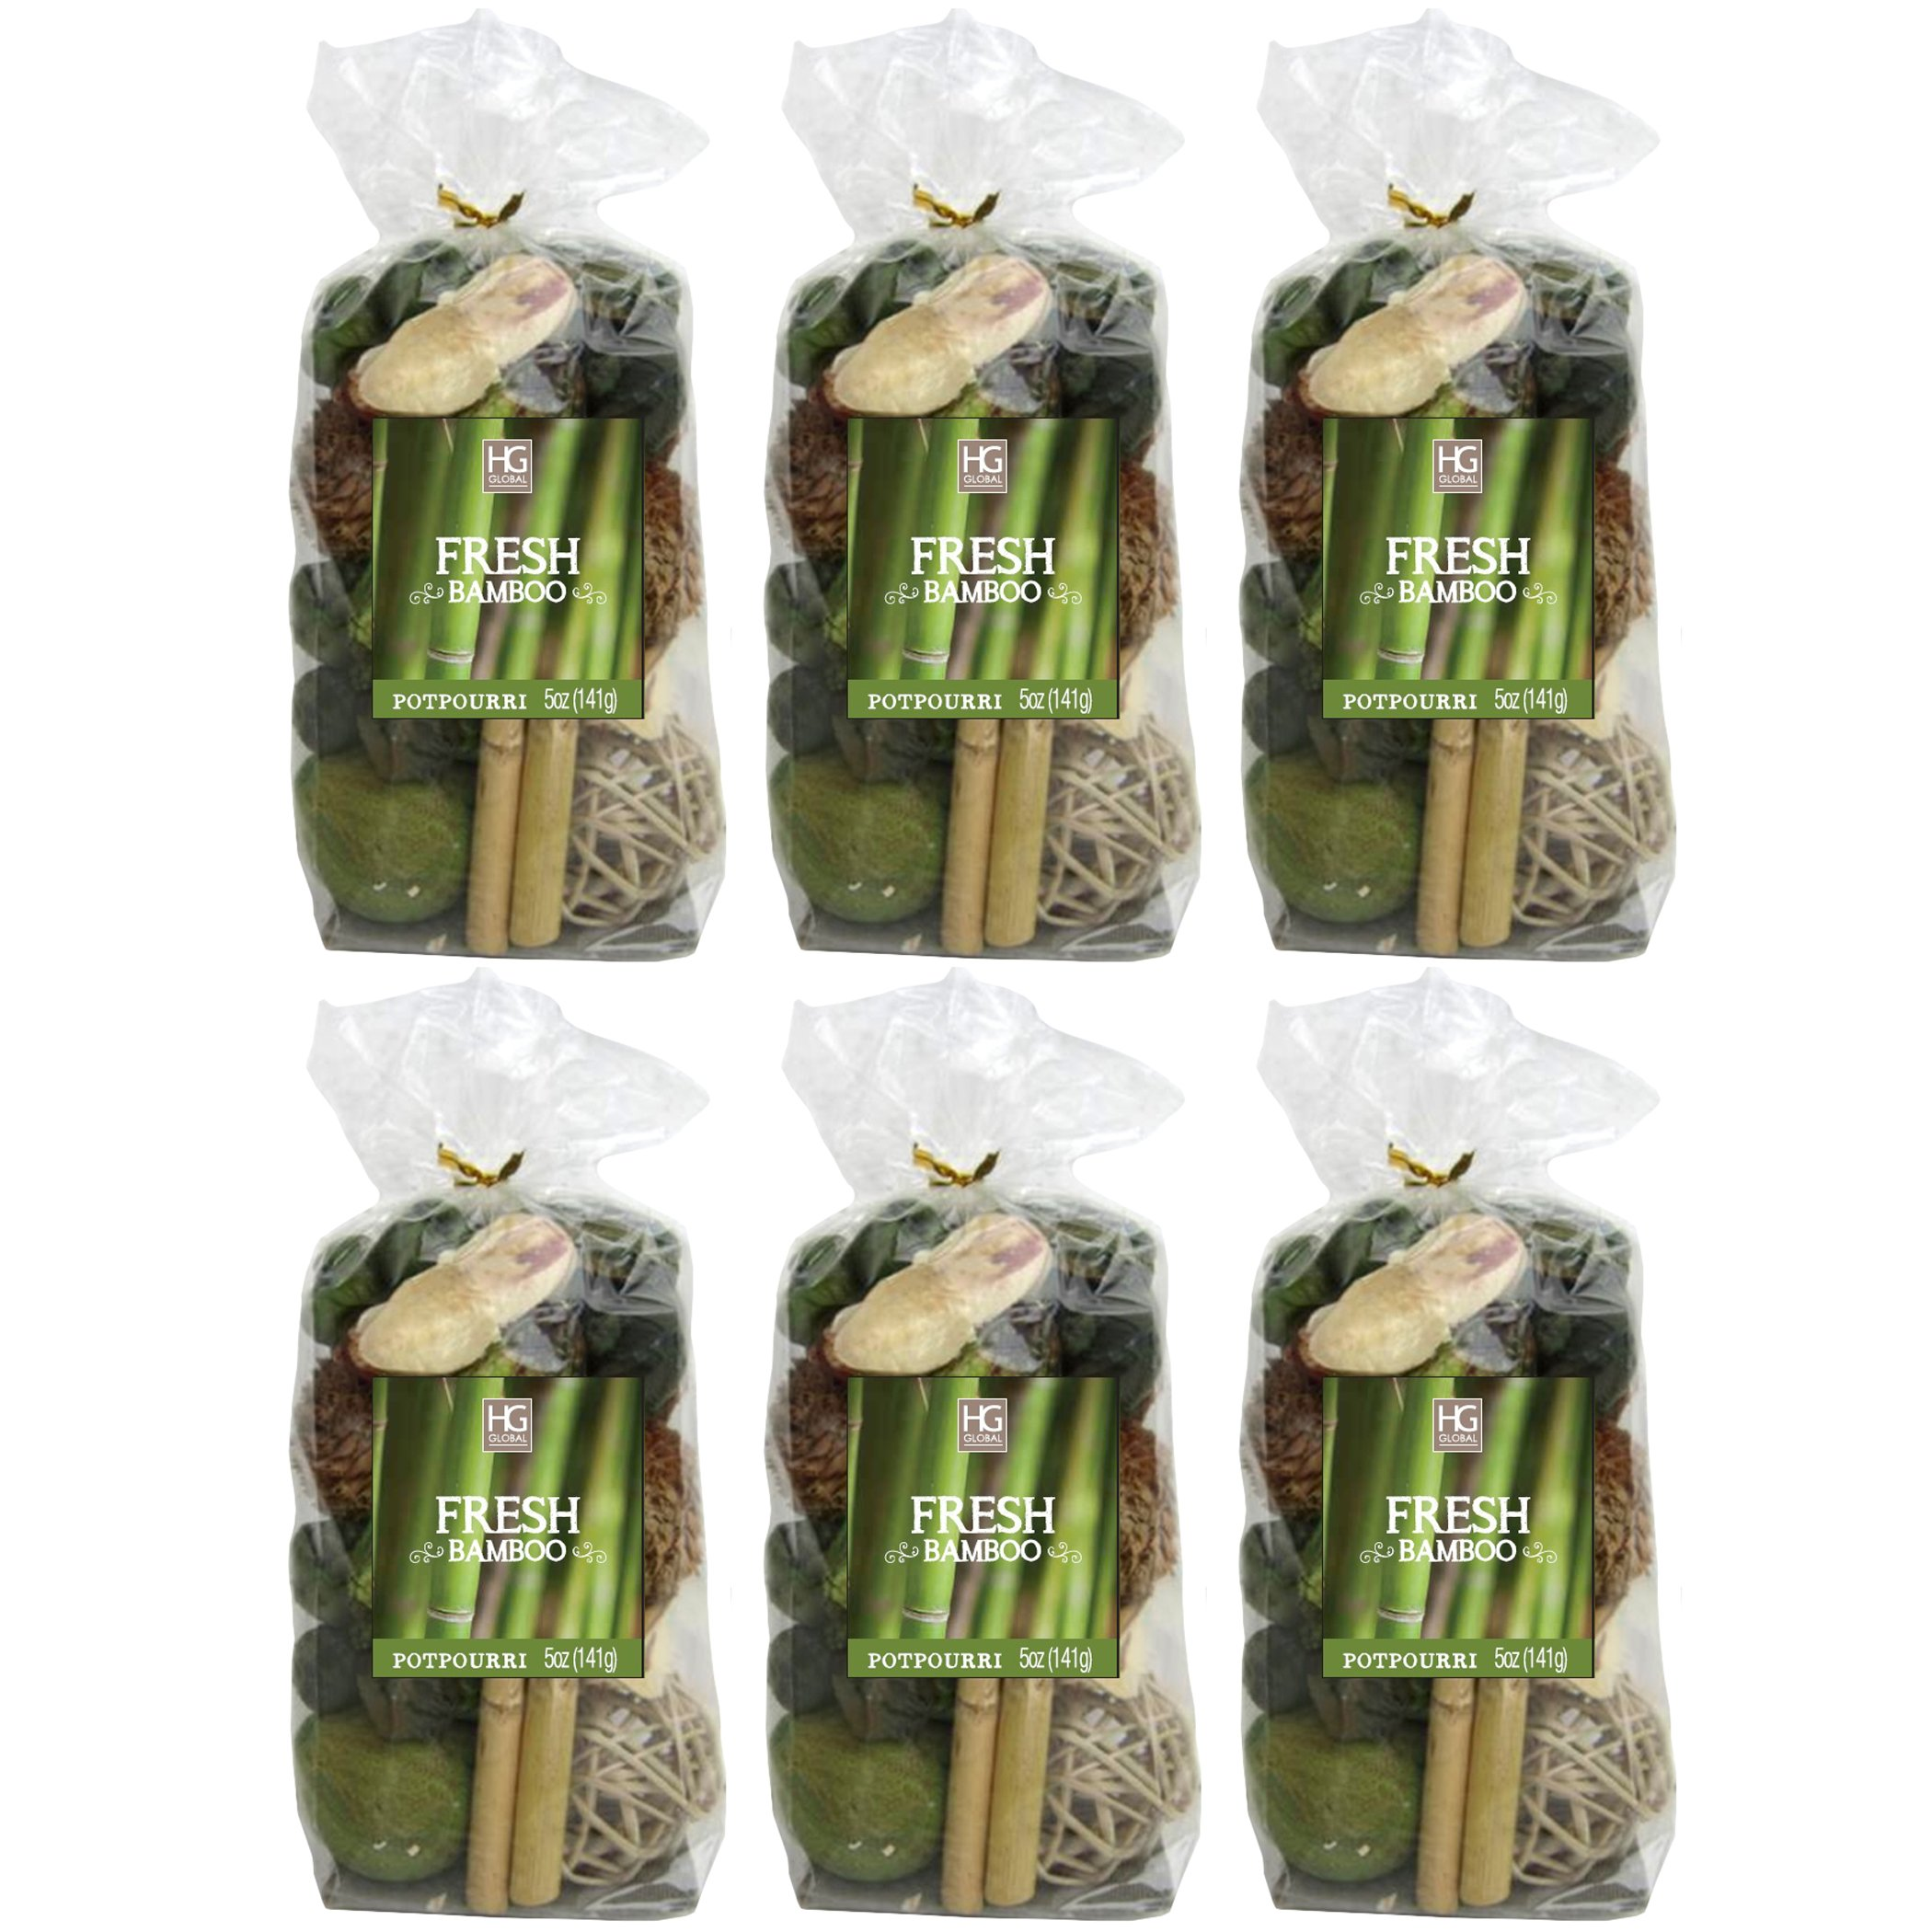 Hosley Set of 6 Bags, 5 Oz Each, Total 30 Oz Fresh Bamboo Chunky Potpourri. Perfect for Wedding or Special Occasion; Special Events, Aromatherapy, Spa, Reiki, Meditation O9 by Hosley